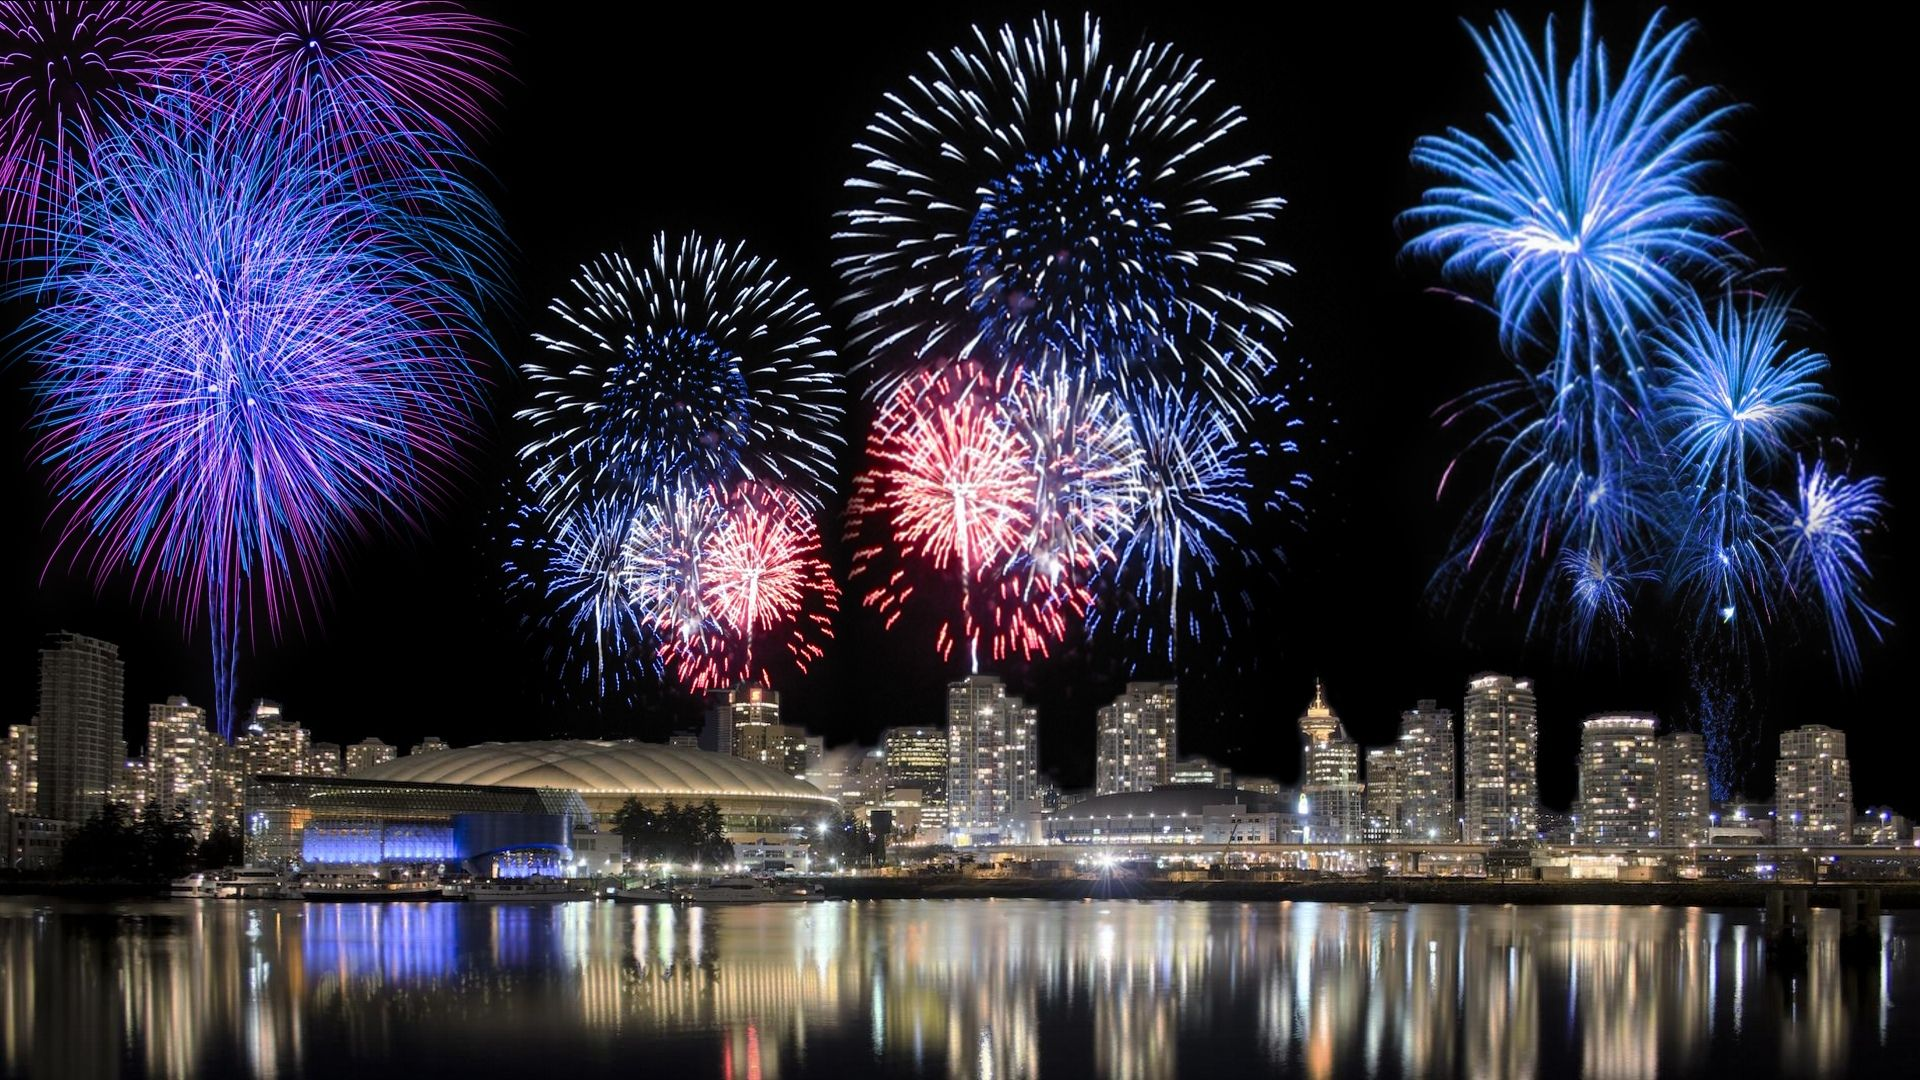 Fireworks Live Wallpaper – Can You Create a Perfect Ambiance For Your Desktop?